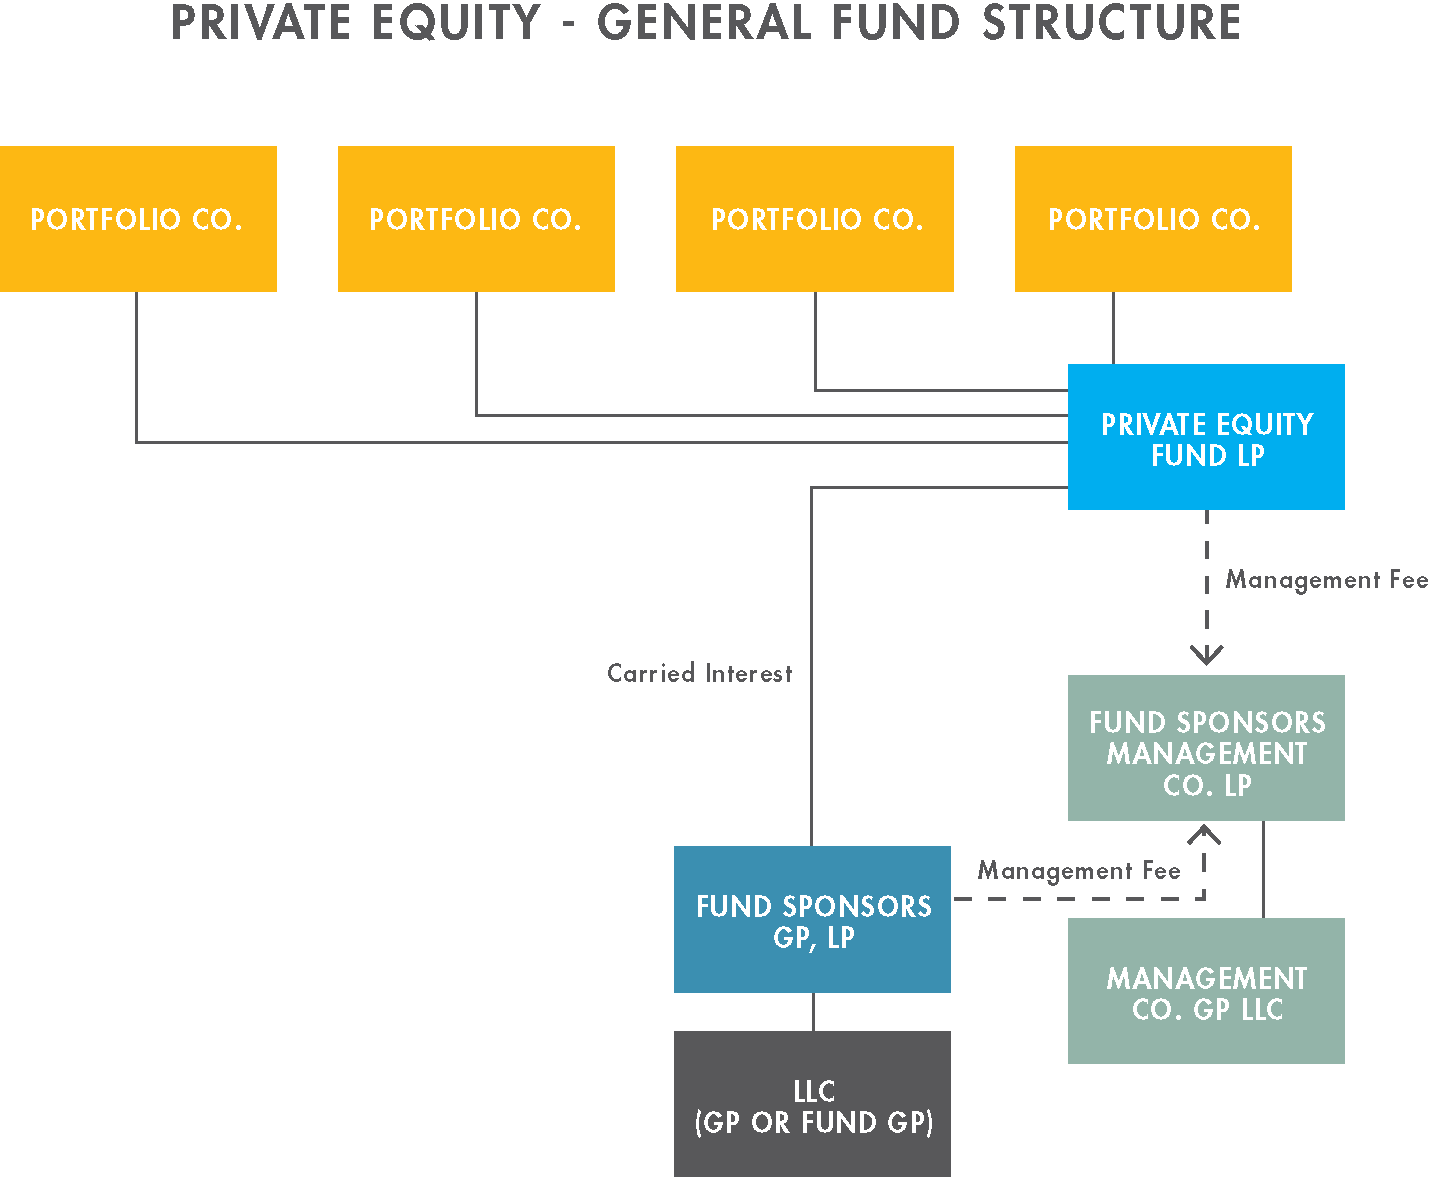 Private Equity General Fund Structure